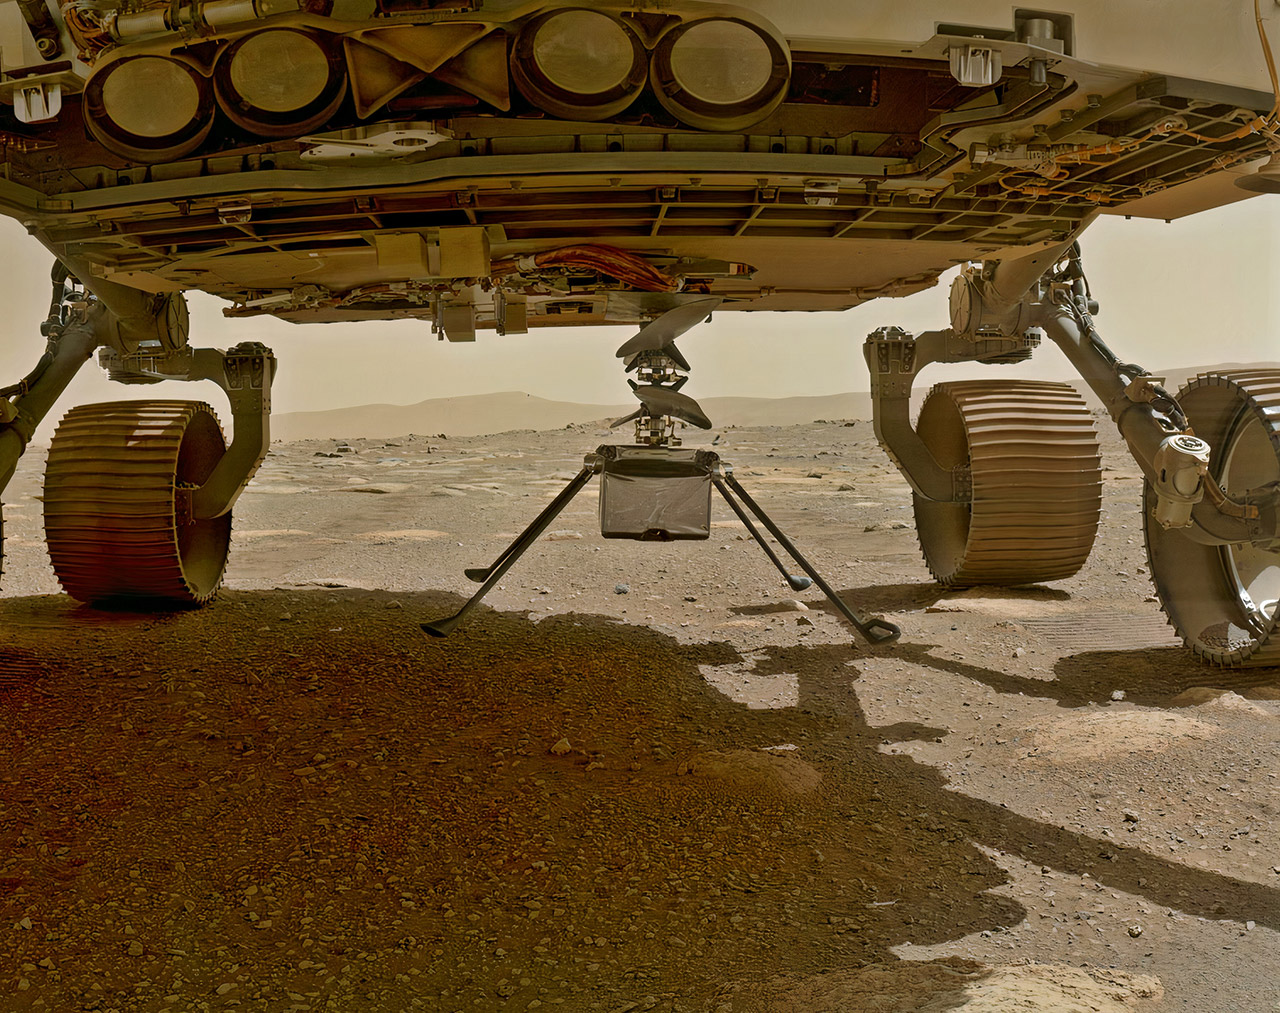 NASA Perseverance Rover Ingenuity Helicopter Drop